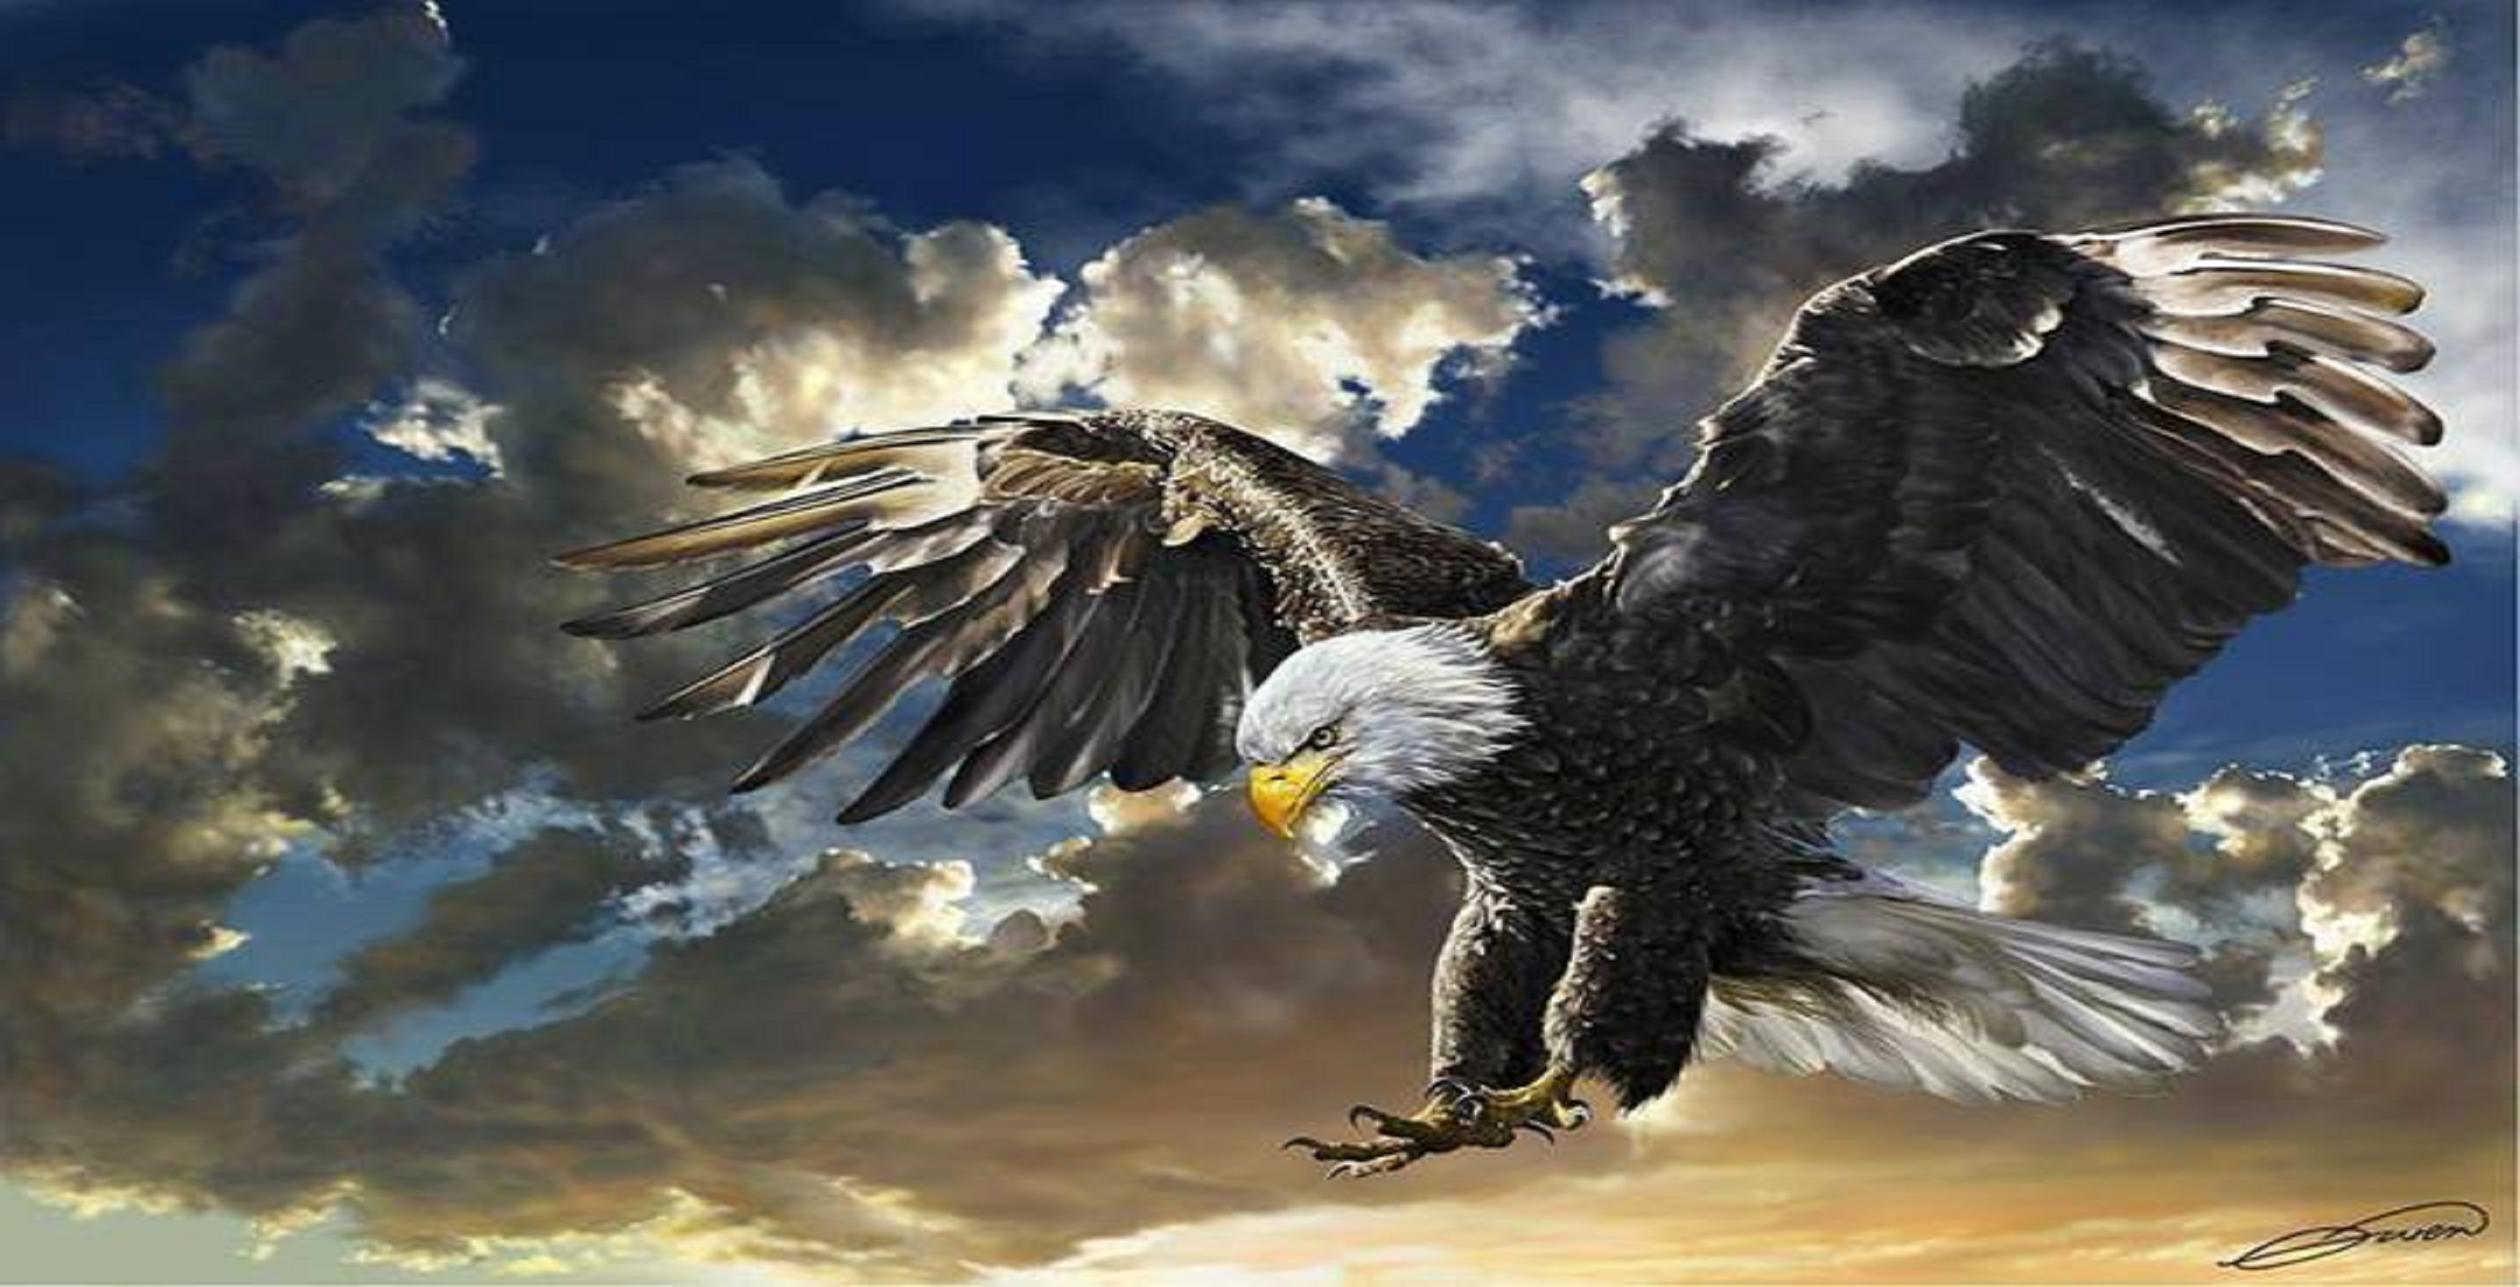 Eagle painting wallpaper